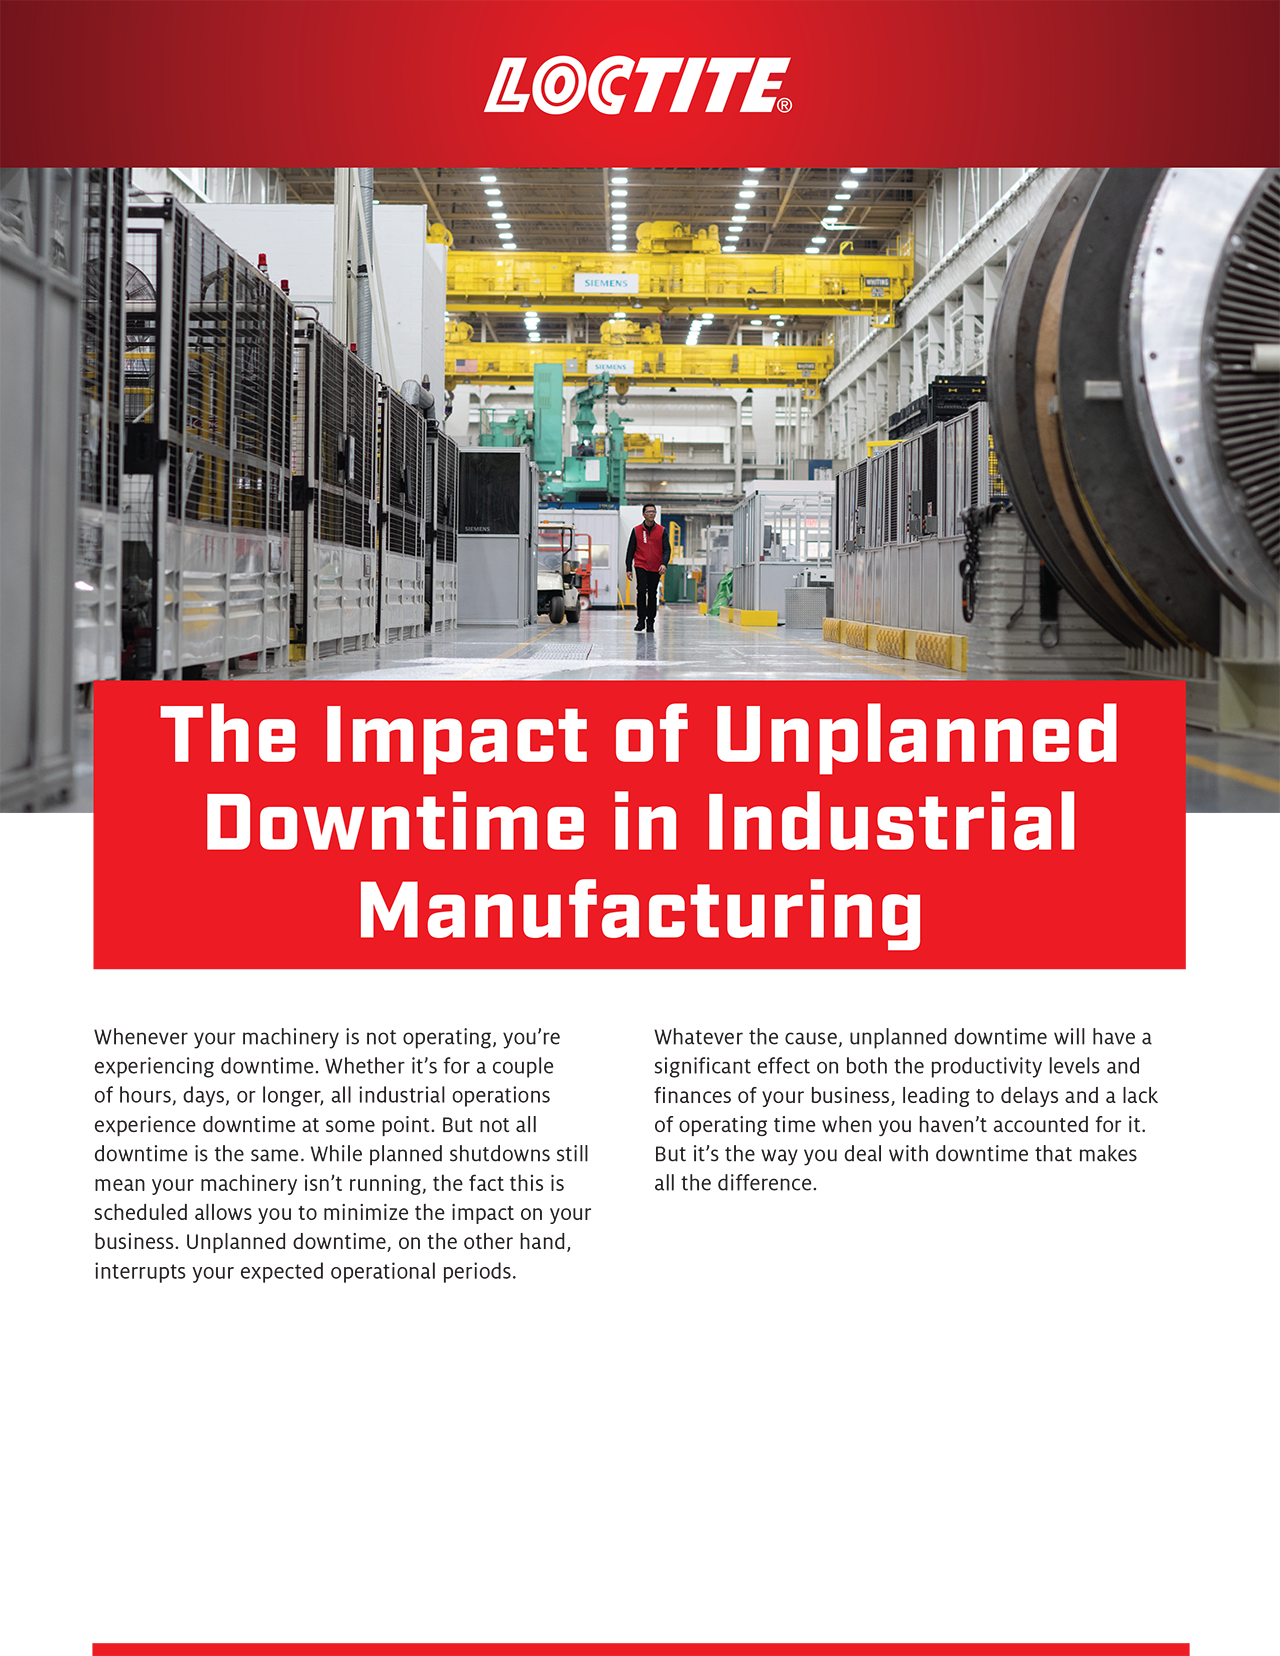 Impact of Unplanned Downtime in Industrial Manufacturing p1